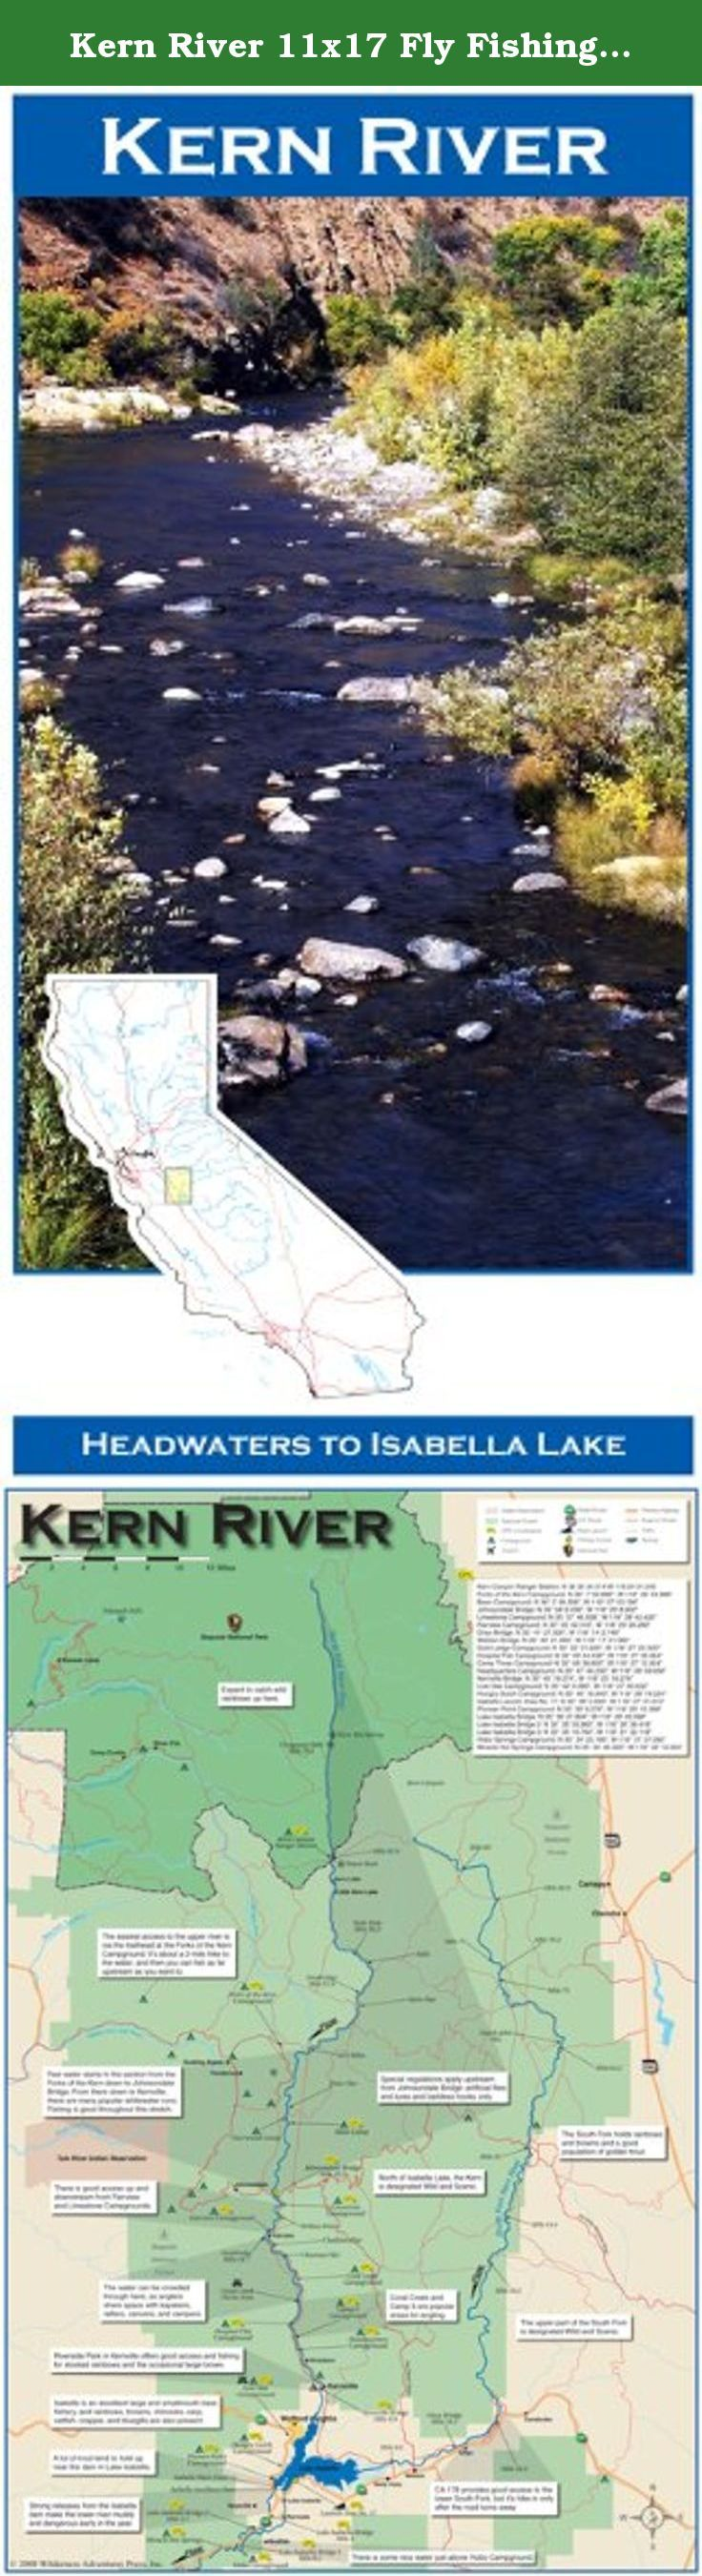 Map of the Kern River from headwaters